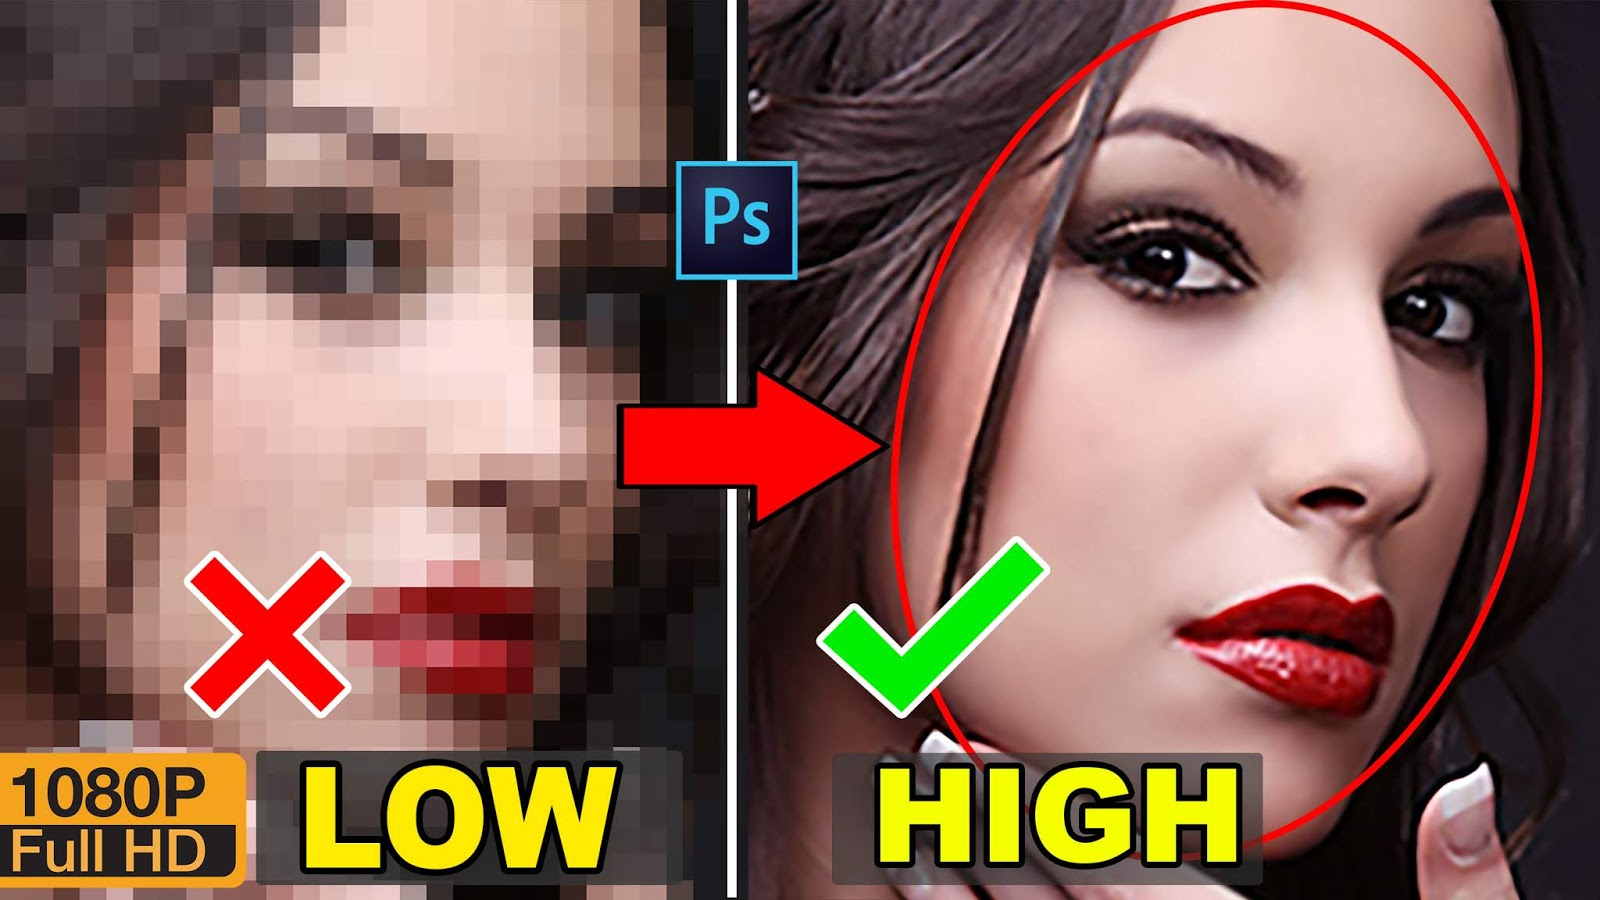 how to convert depixelate image and convert into high-quality